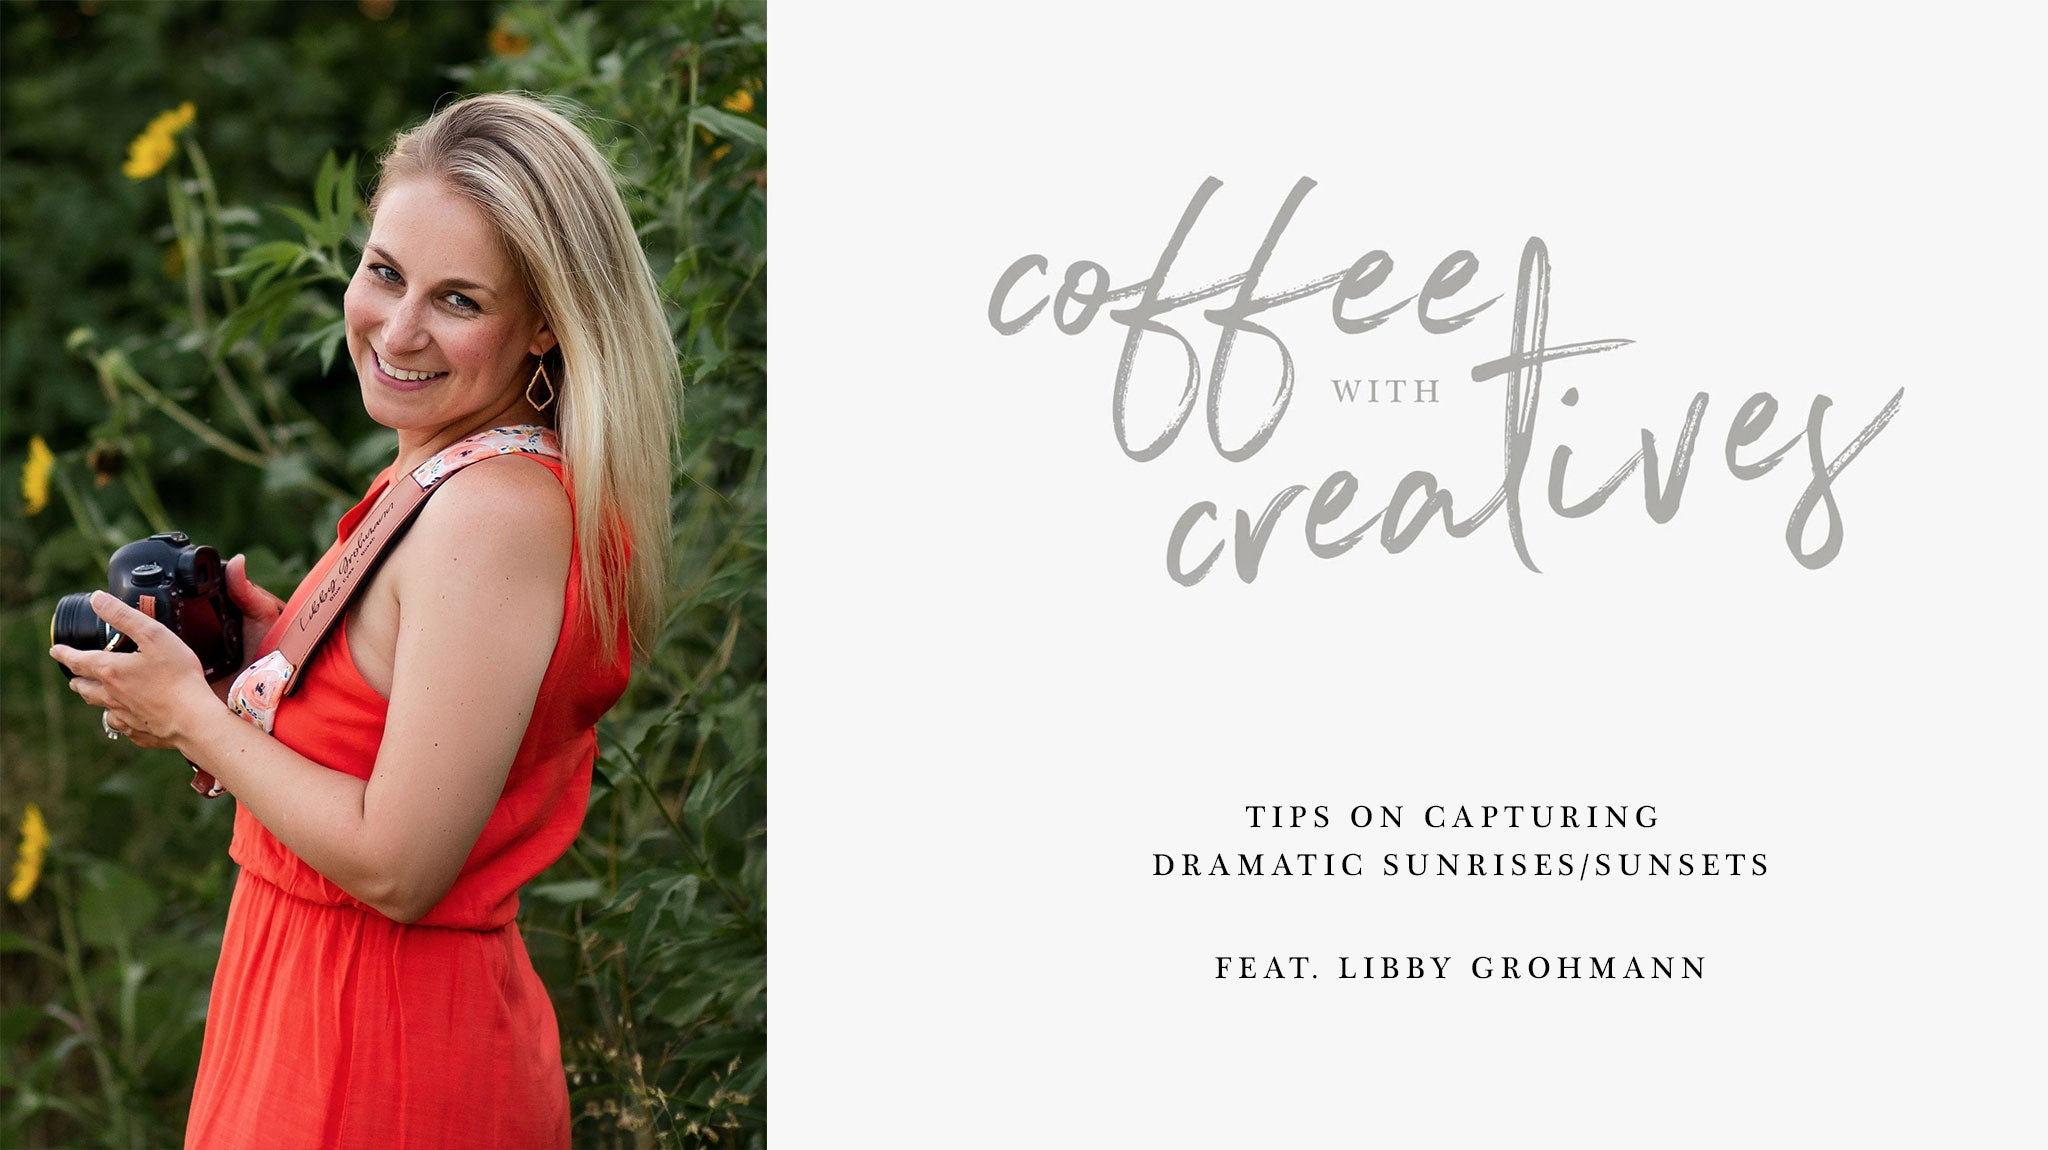 Coffee with Creatives: Tips on capturing dramatic skies with Libby Grohmann